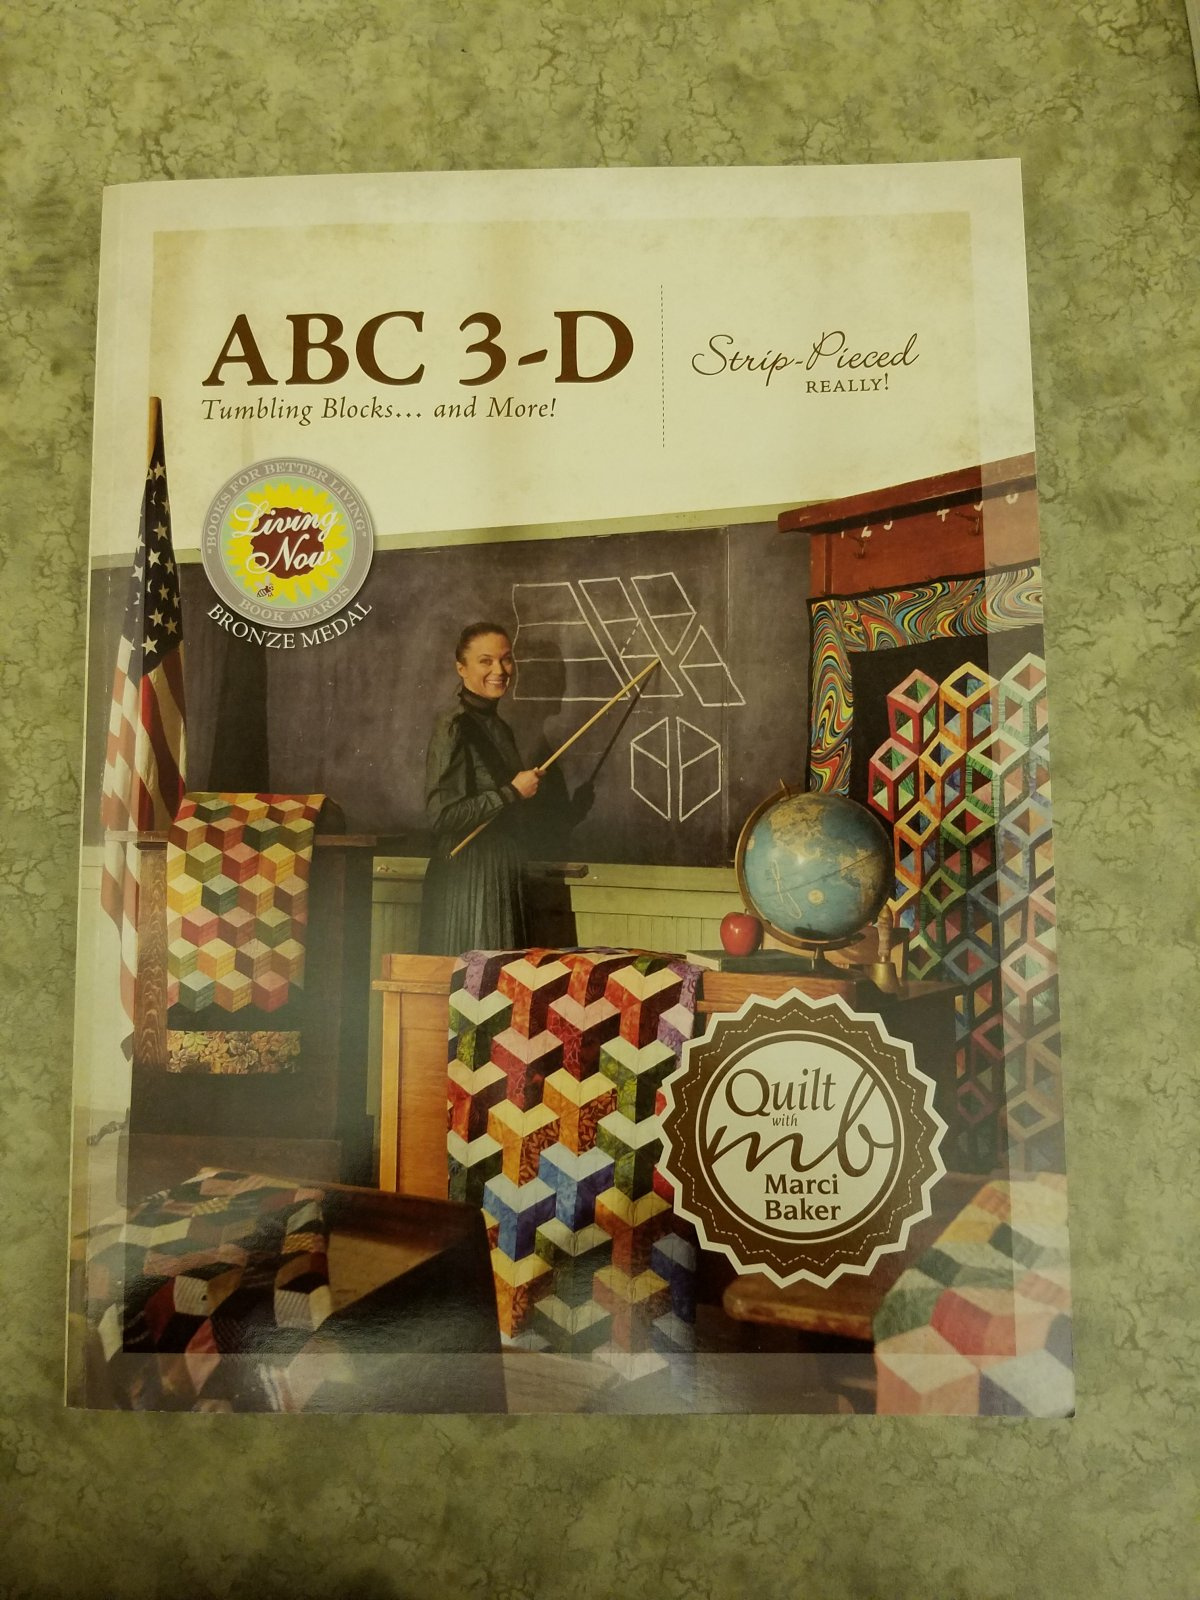 ABC 3-D Tumbling Blocks and More... - Softcover